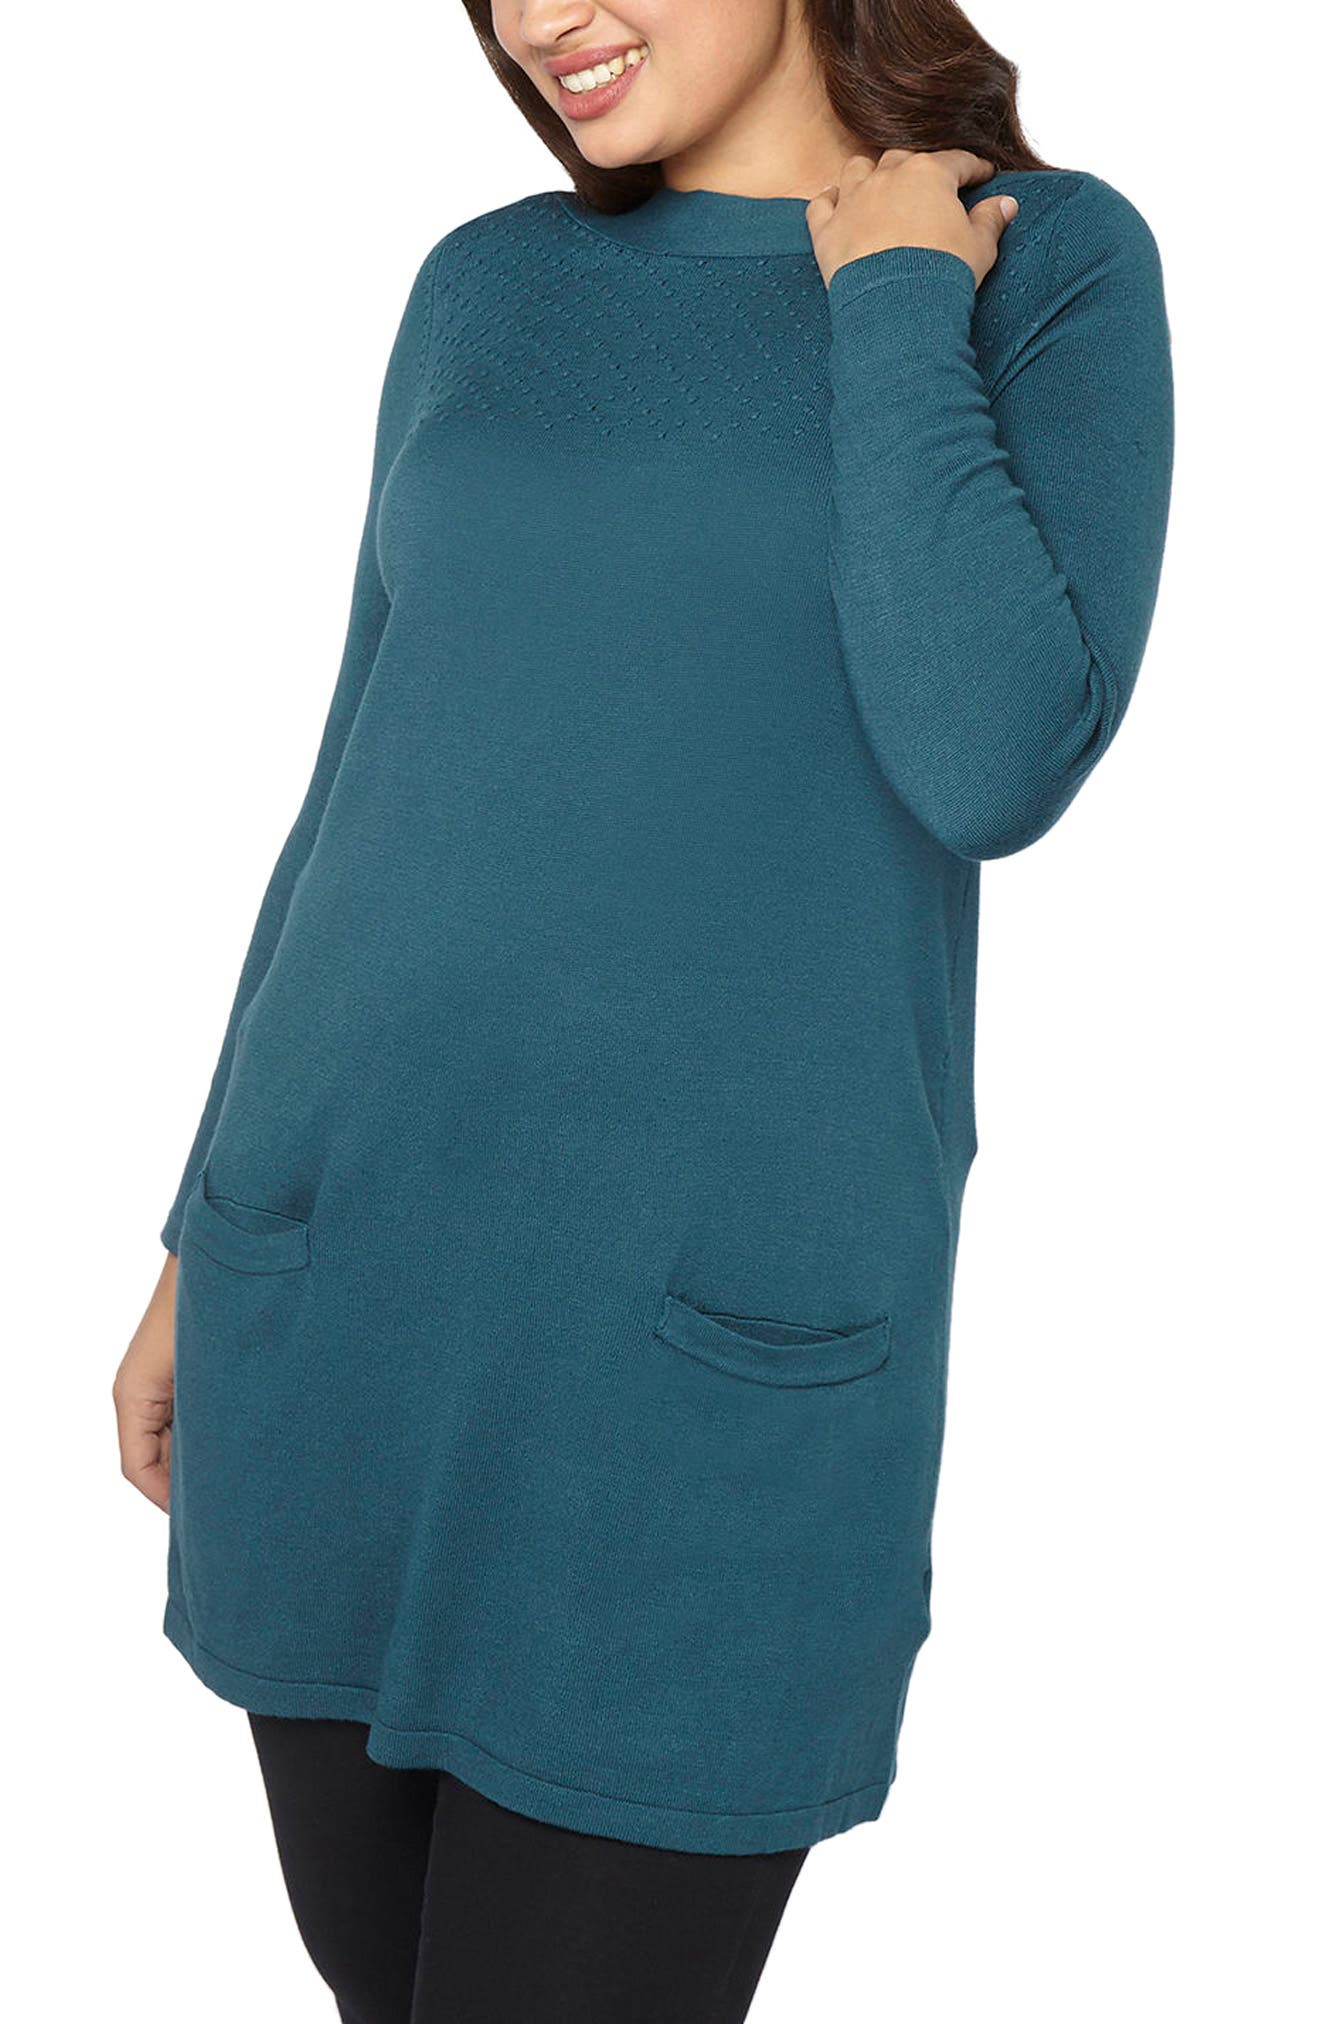 Main Image - Evans Front Pocket Textured Tunic Sweater (Plus Size)